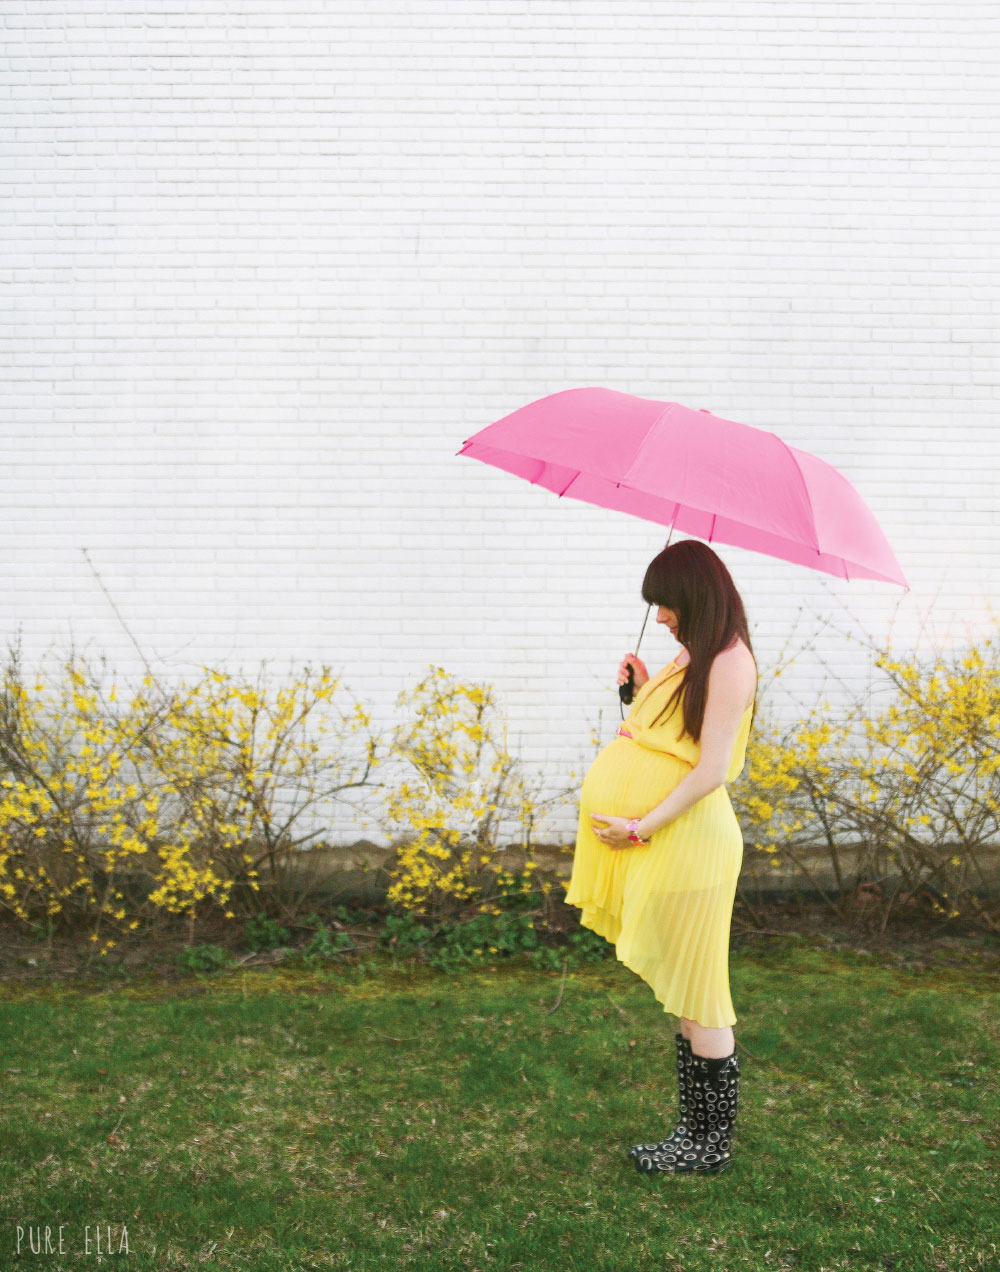 Pure-Ella-Pregancy-Photography-yellow-dress-with-umbrella